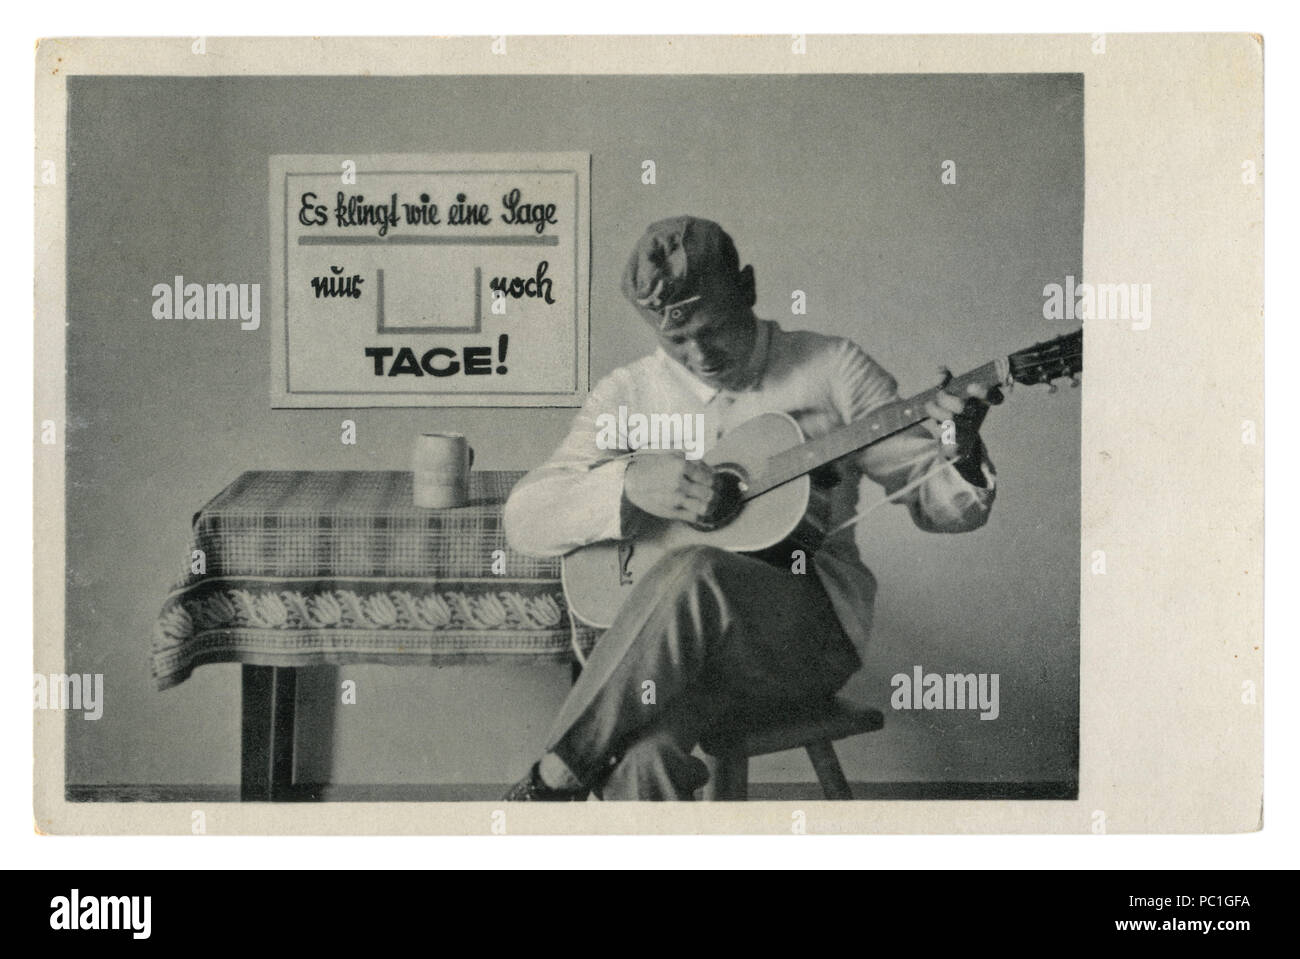 German historical photo postcard: soldier in forage cap plays guitar sitting on a chair. The army's leisure, world war two, Germany, Third Reich Stock Photo